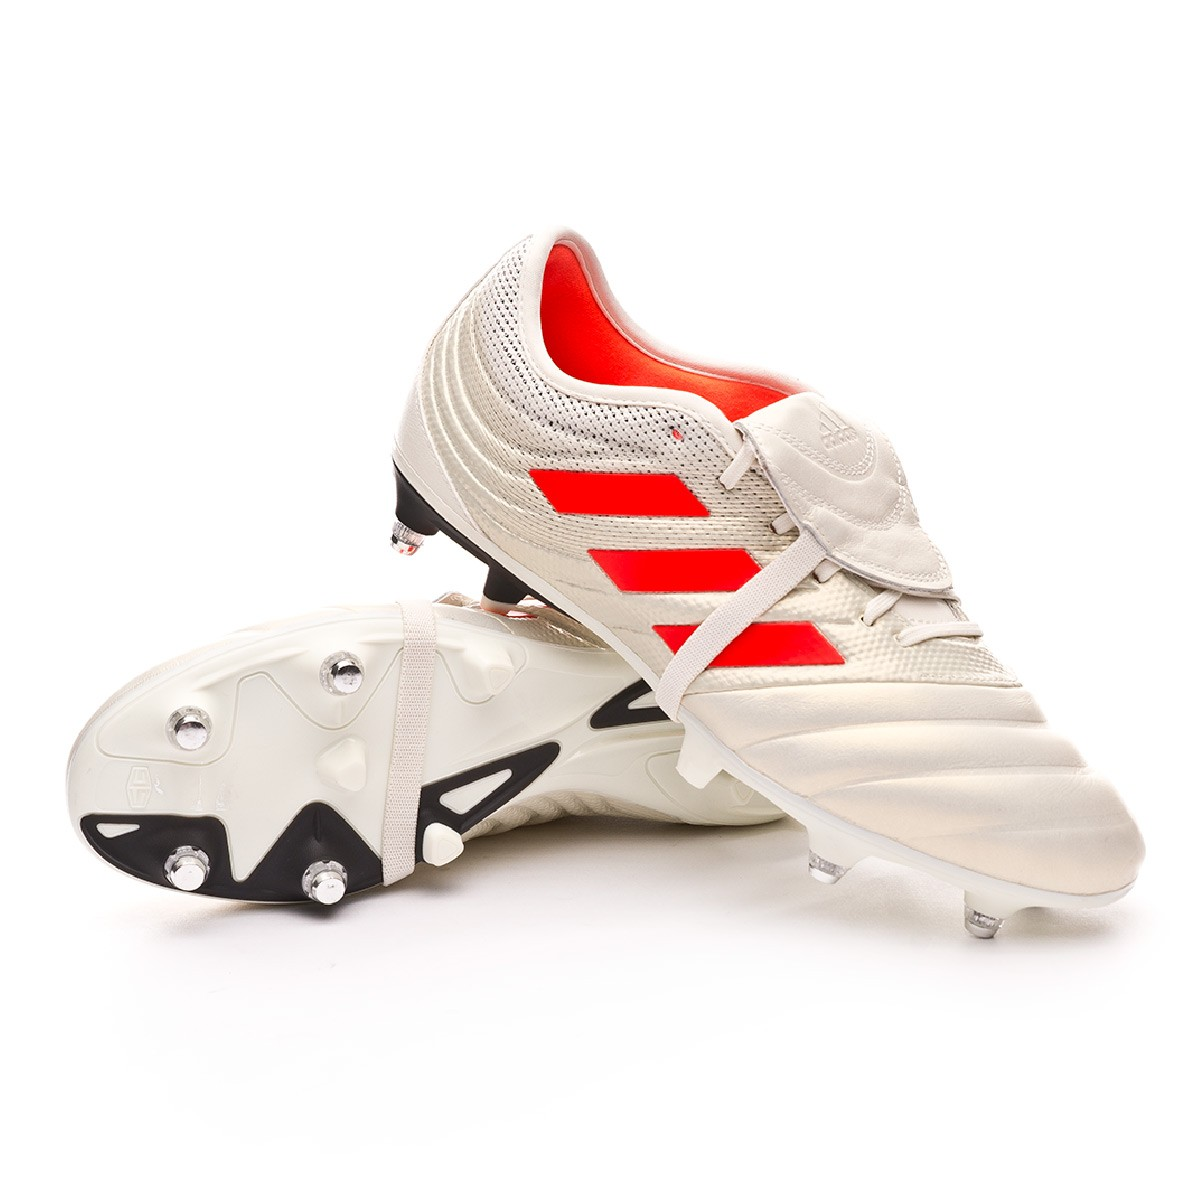 best sneakers 24d0f 685cf adidas Copa Gloro 19.2 SG Boot